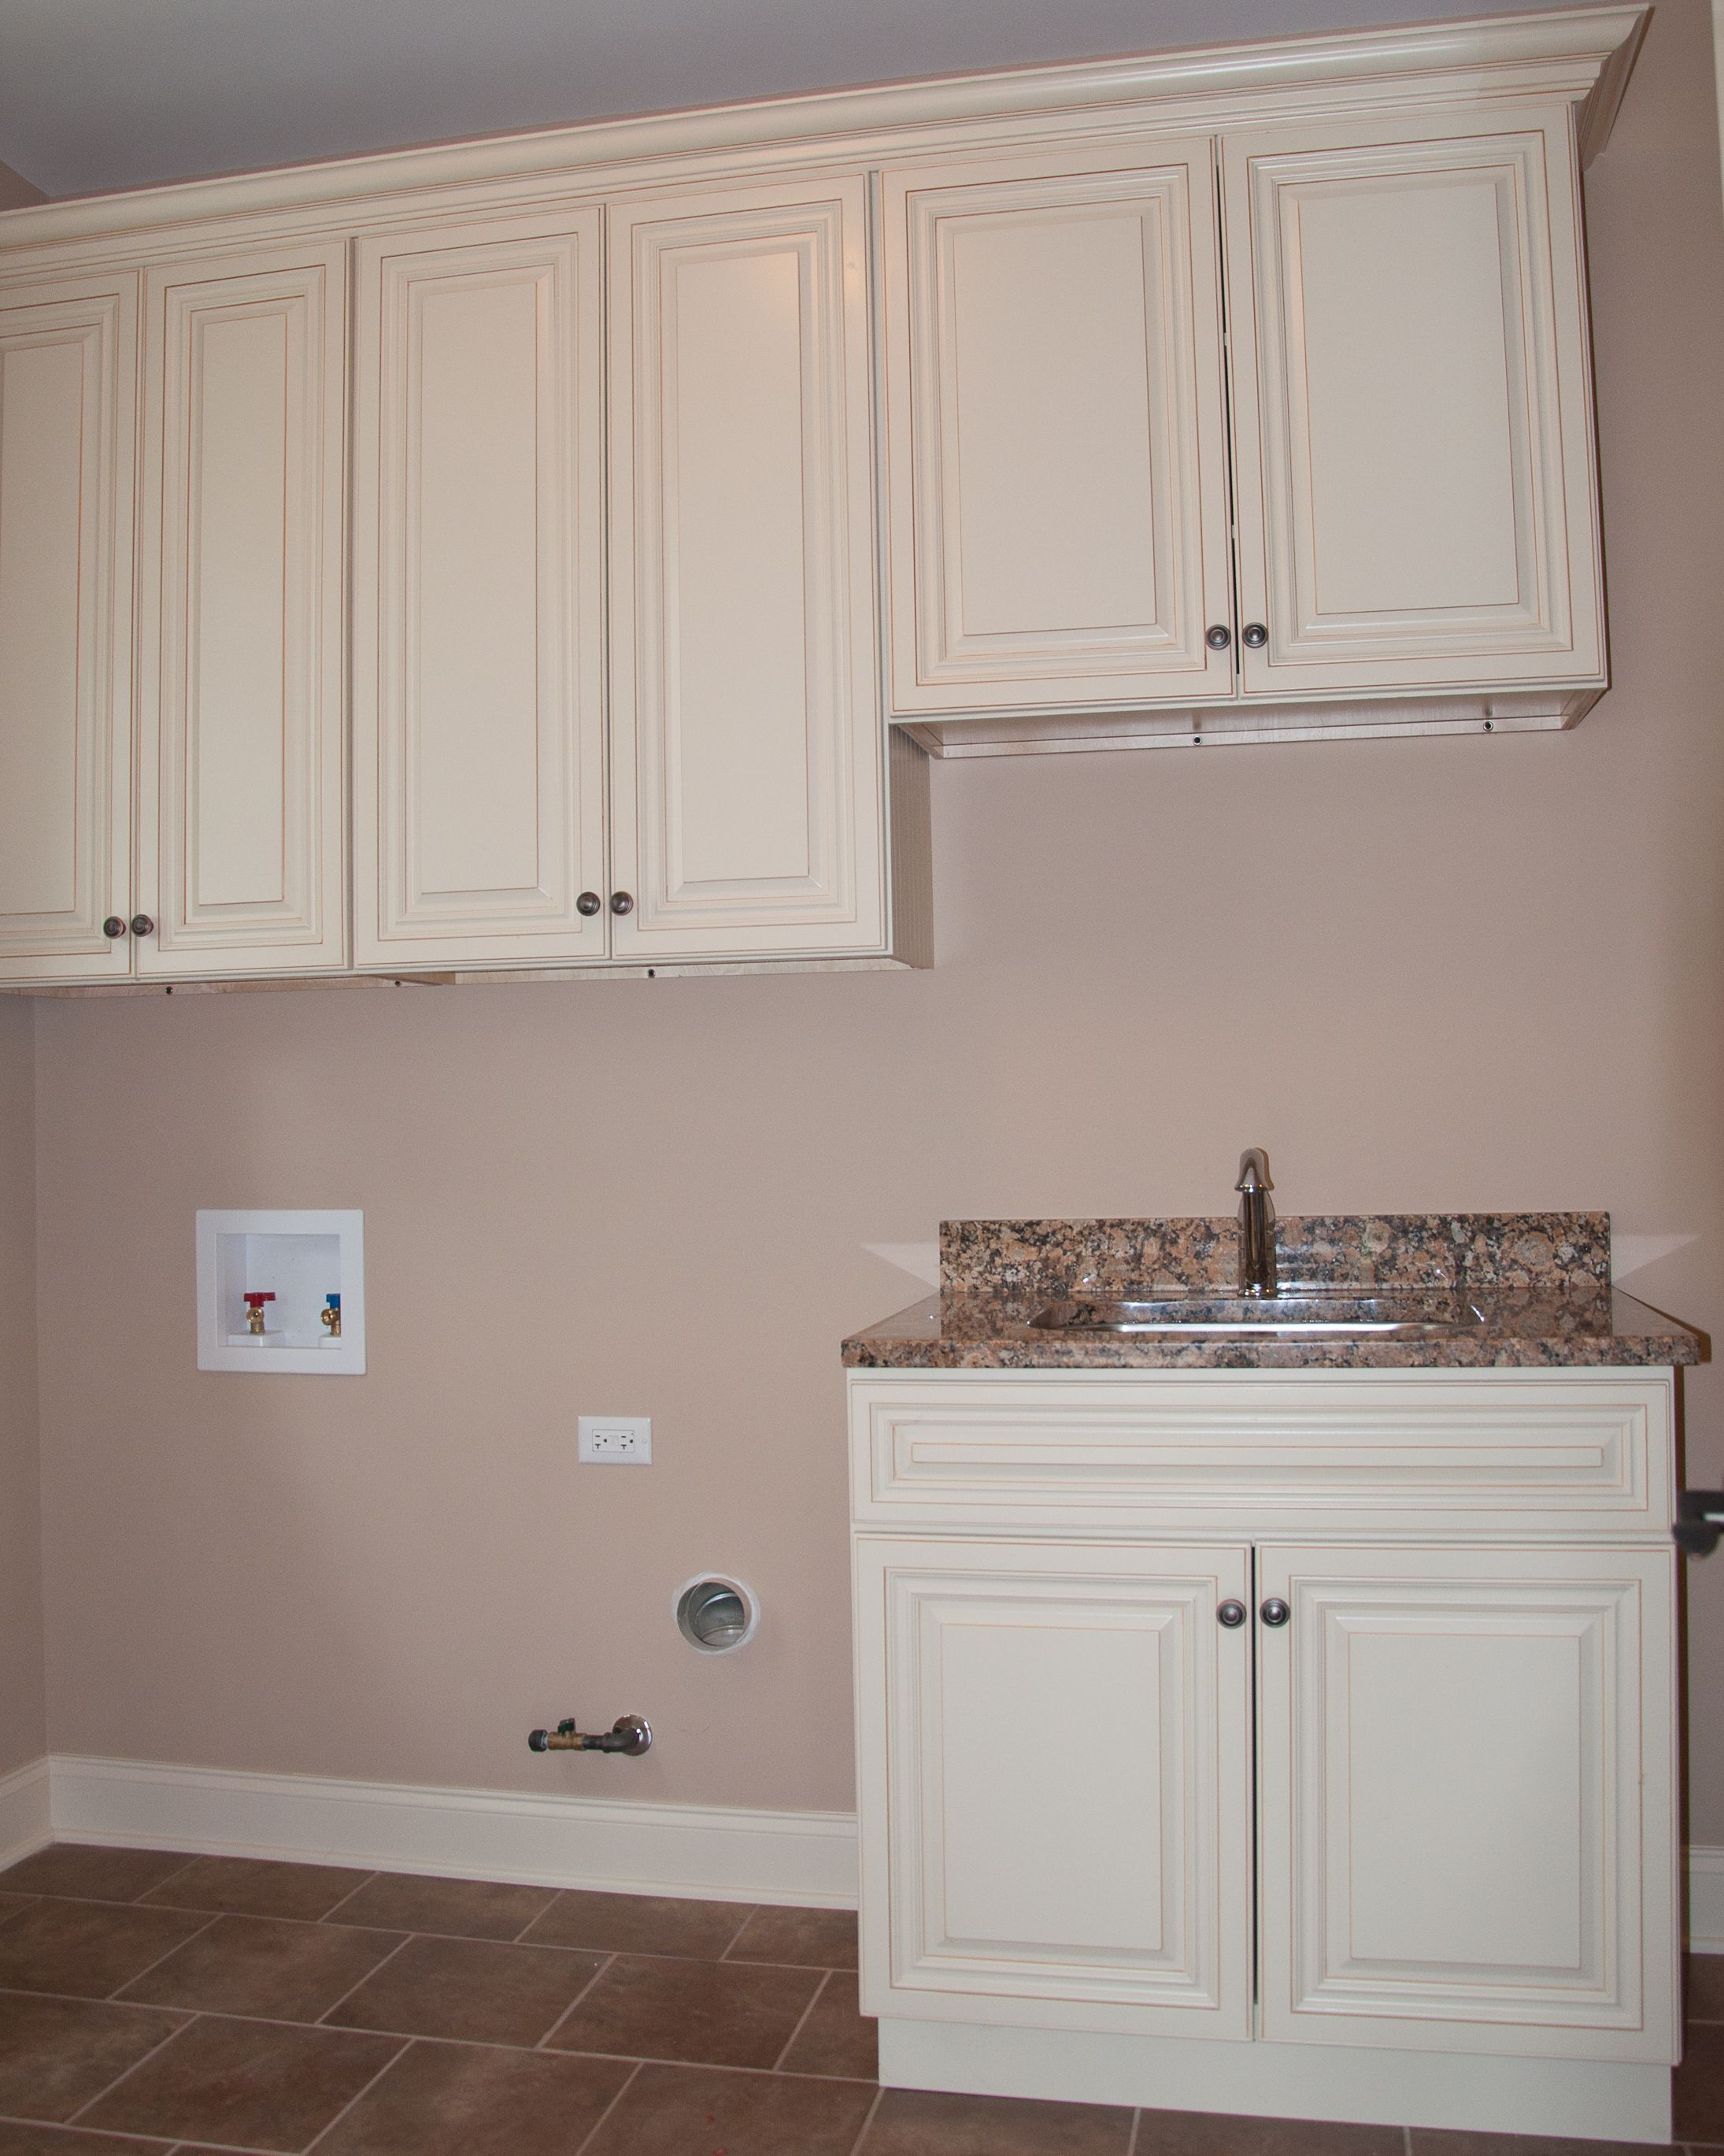 Painted Off White Cabinets For Laundry! Builders Always Seem To Put In  Bright White